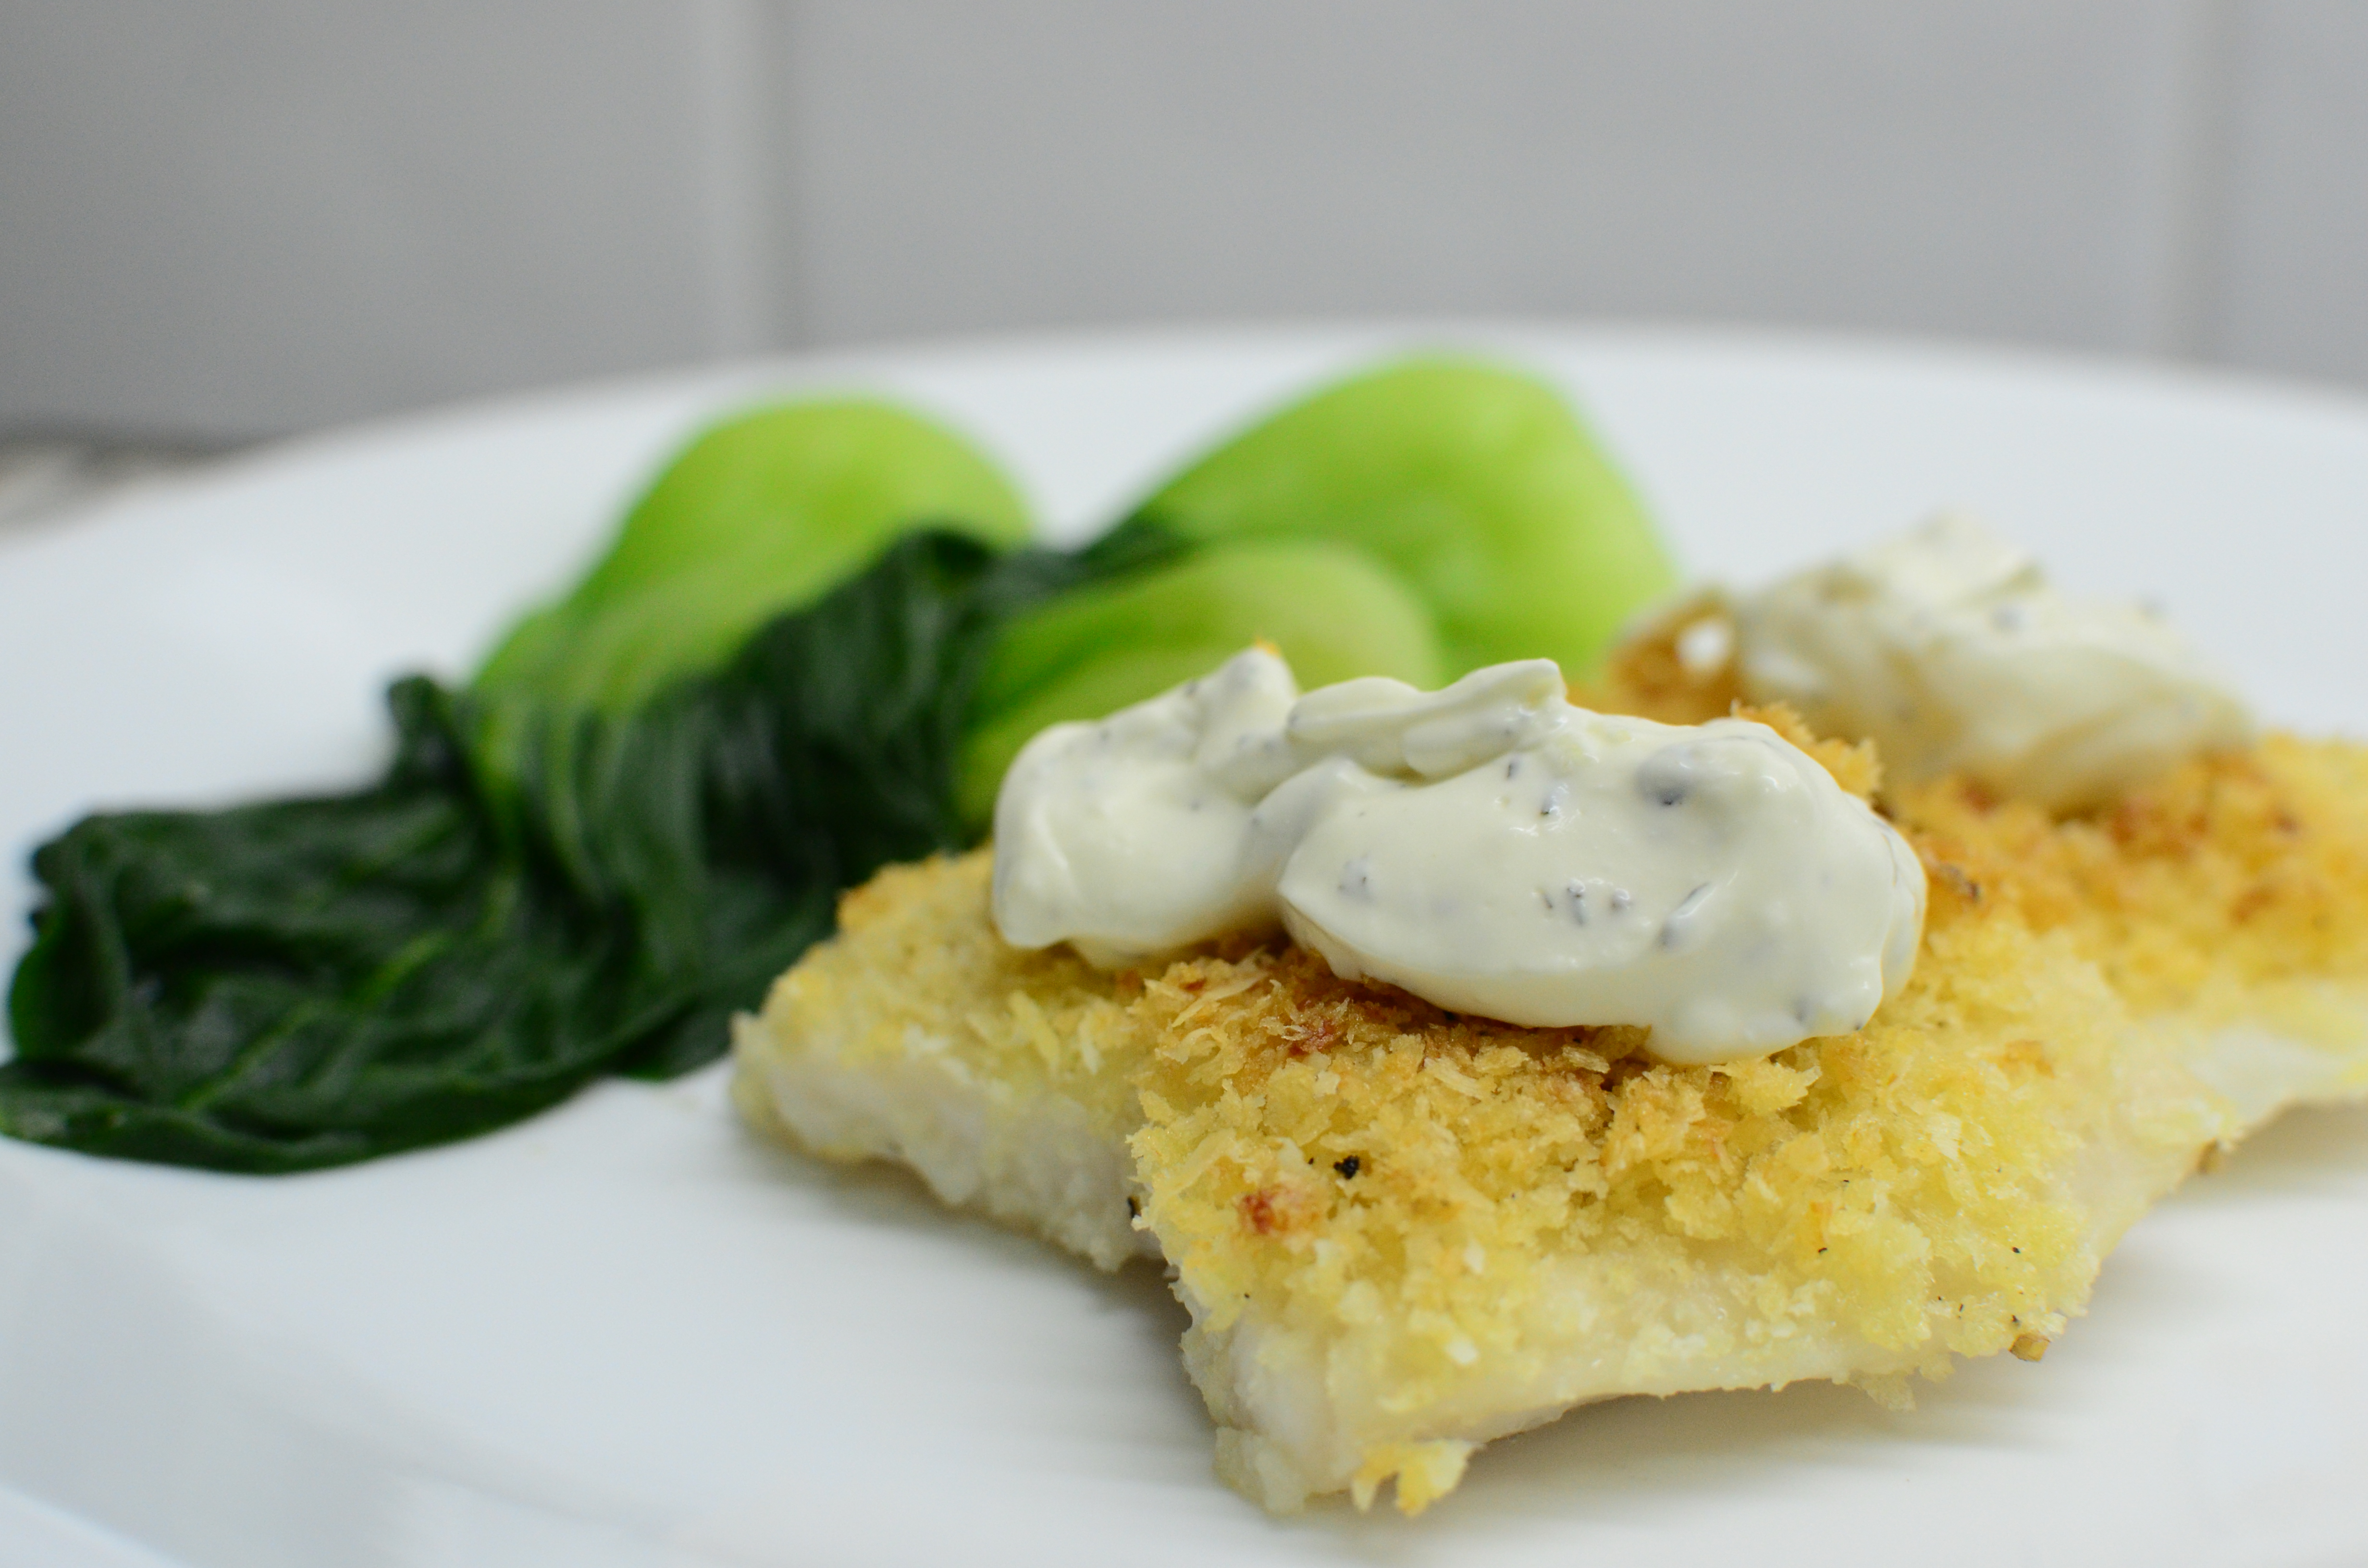 Parmesan crusted fish fillet with creamy dill sauce for Parmesan crusted fish